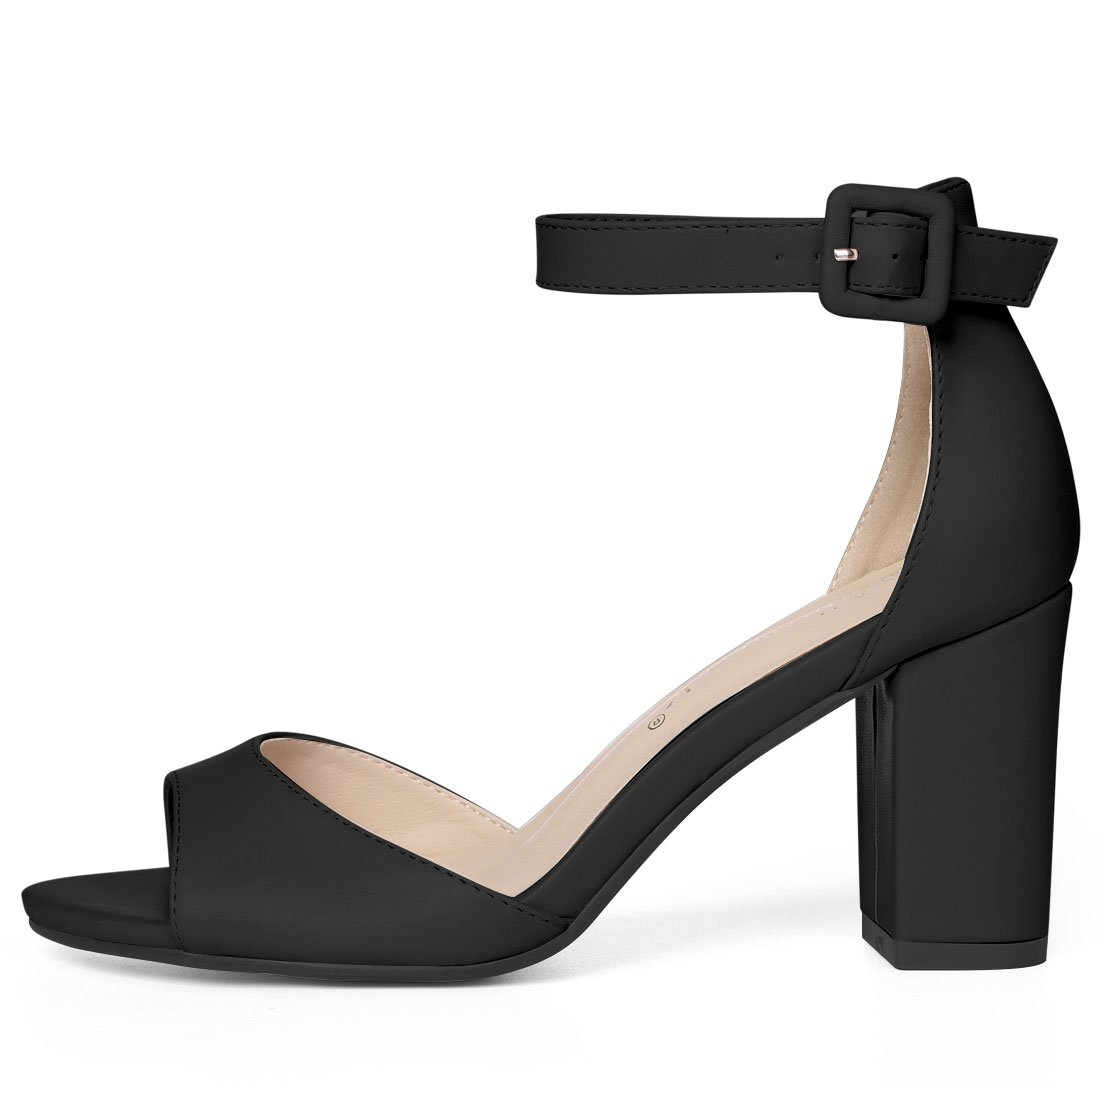 605a80f2dbbd4 Allegra K Women's Ankle Strap Chunky Heeled Sandal